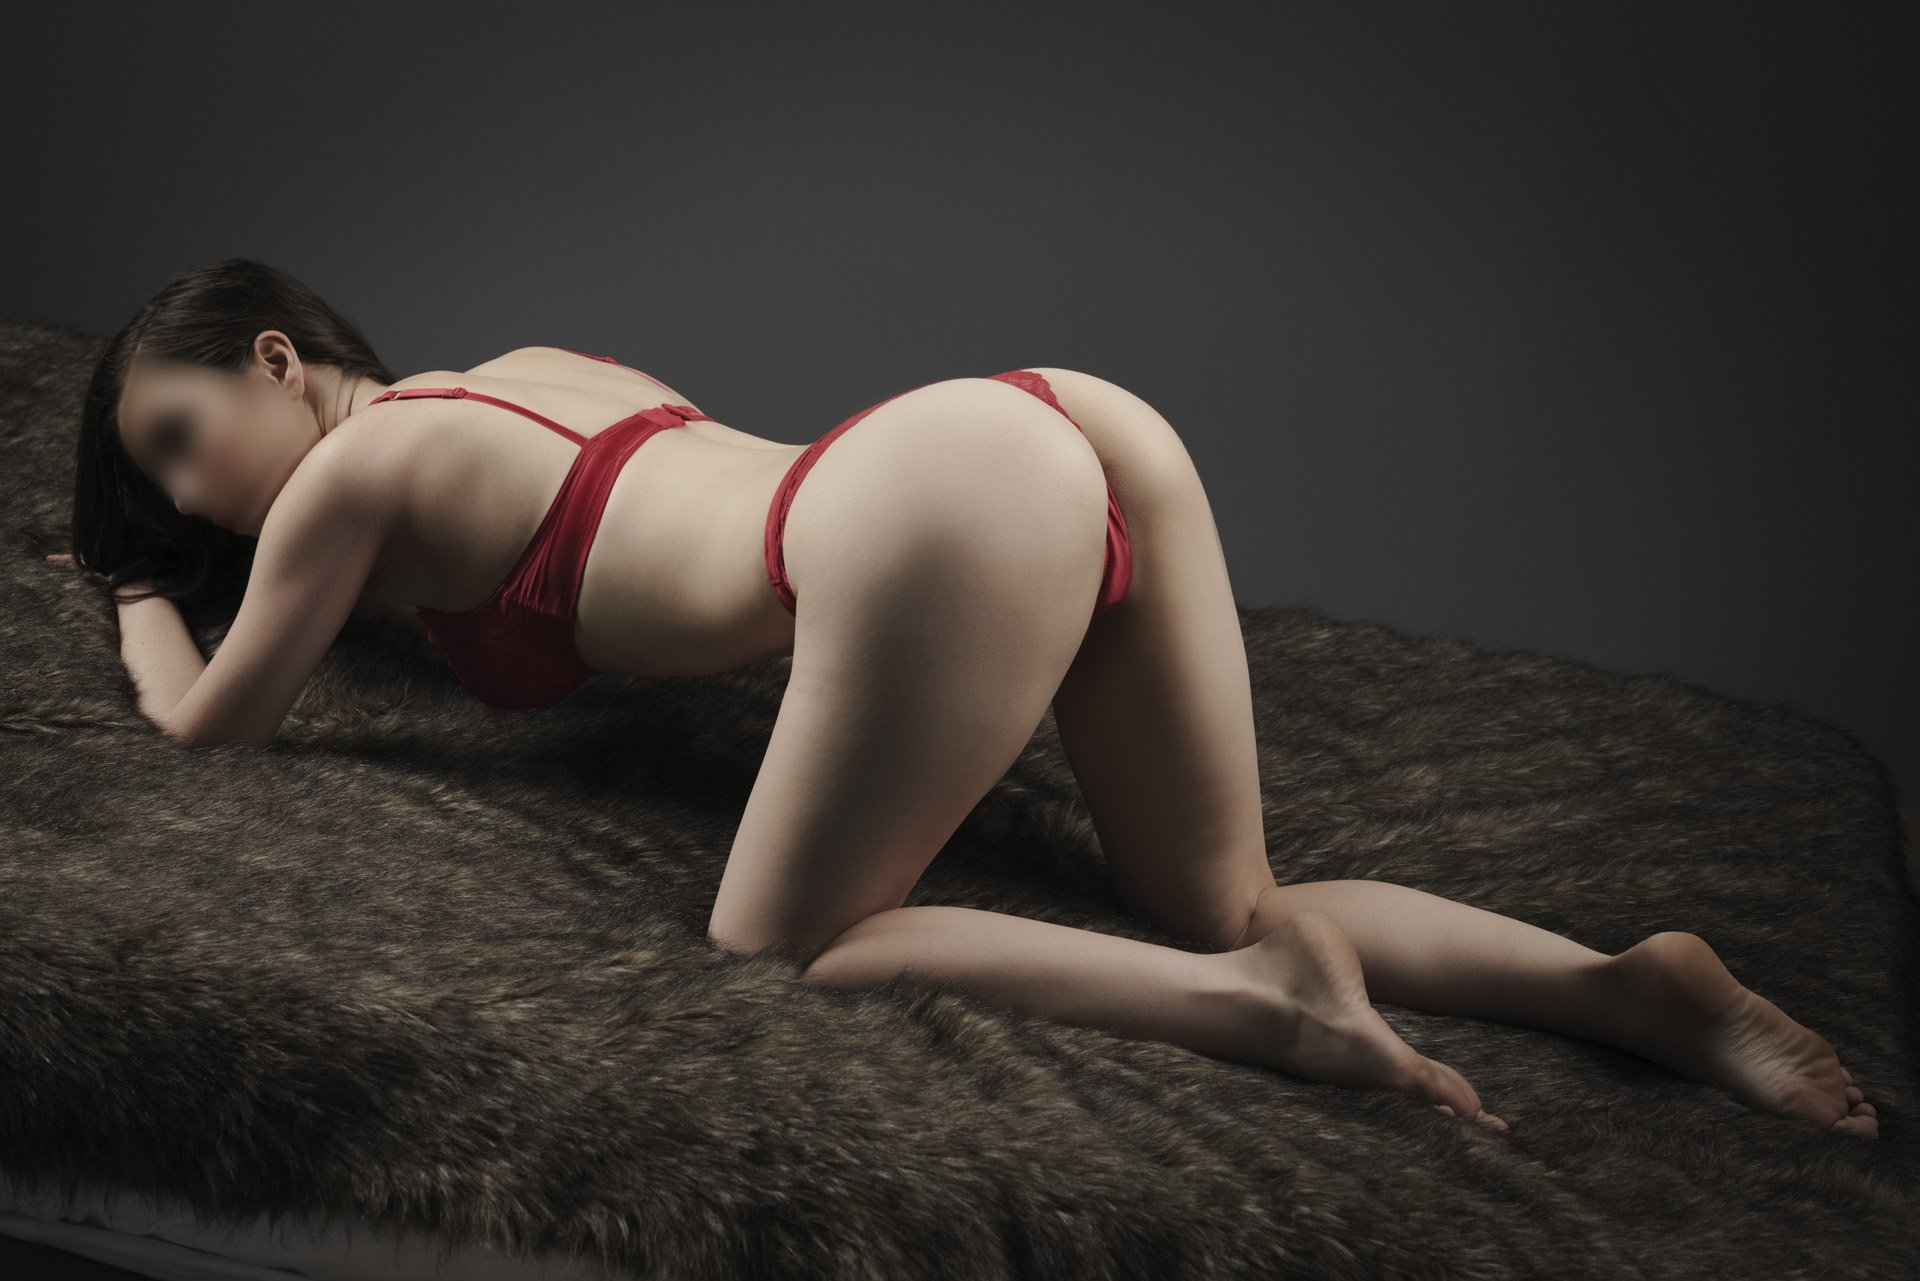 Young brisbane escort GFE service